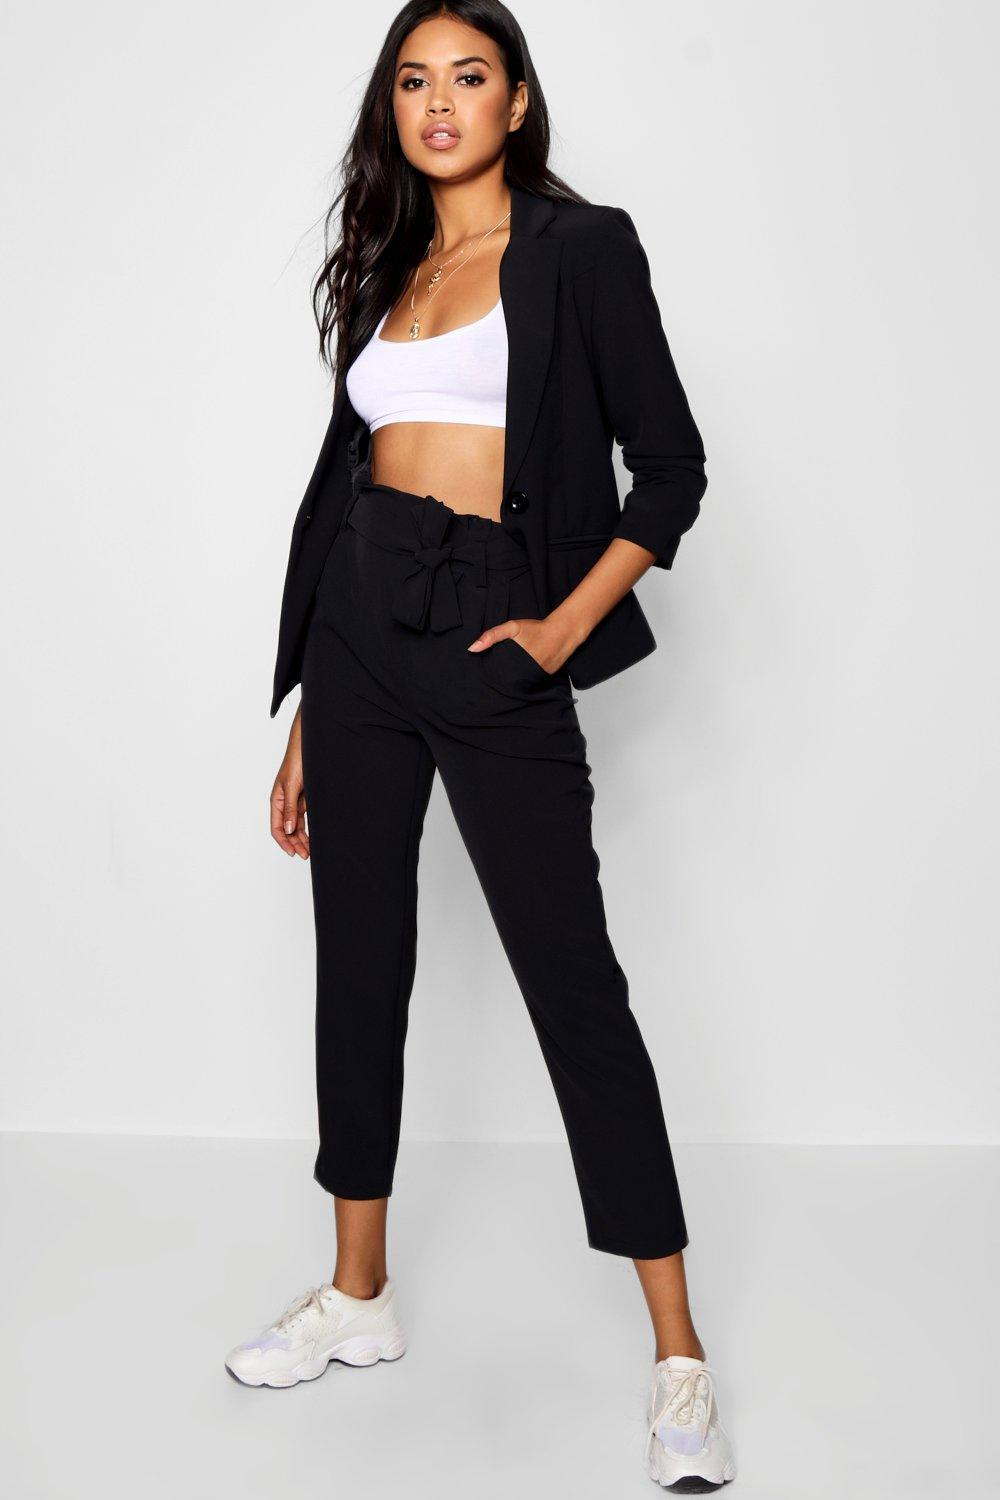 89c8c1674c0f Boohoo Tailored Tapered Trouser in Black - Lyst